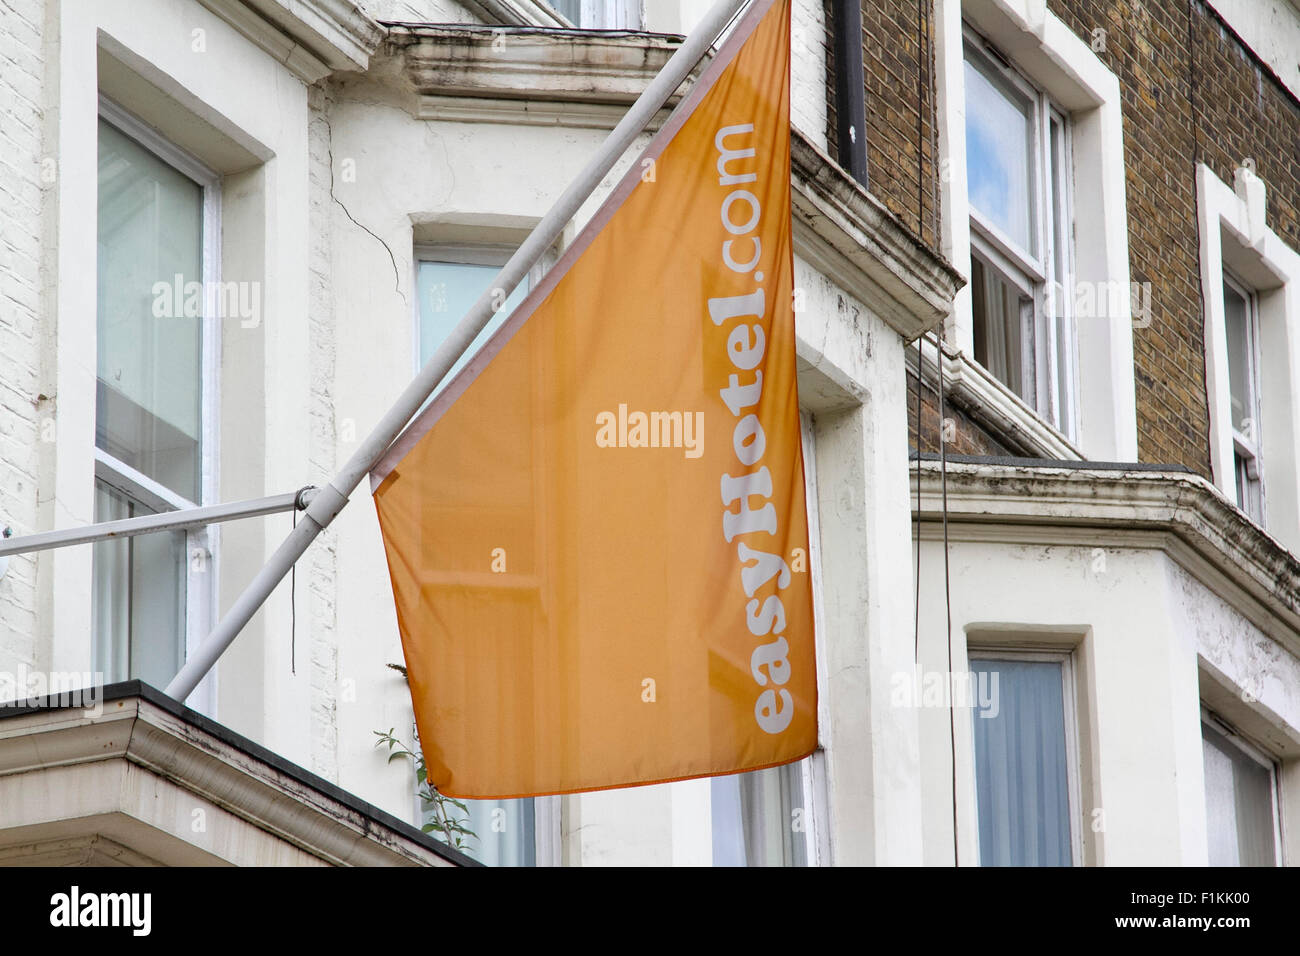 London,UK. 3rd September 2015. Easy hotel part of the Easy Group holdings owned by Sir Stelios Haji-Ioannou. Low - Stock Image